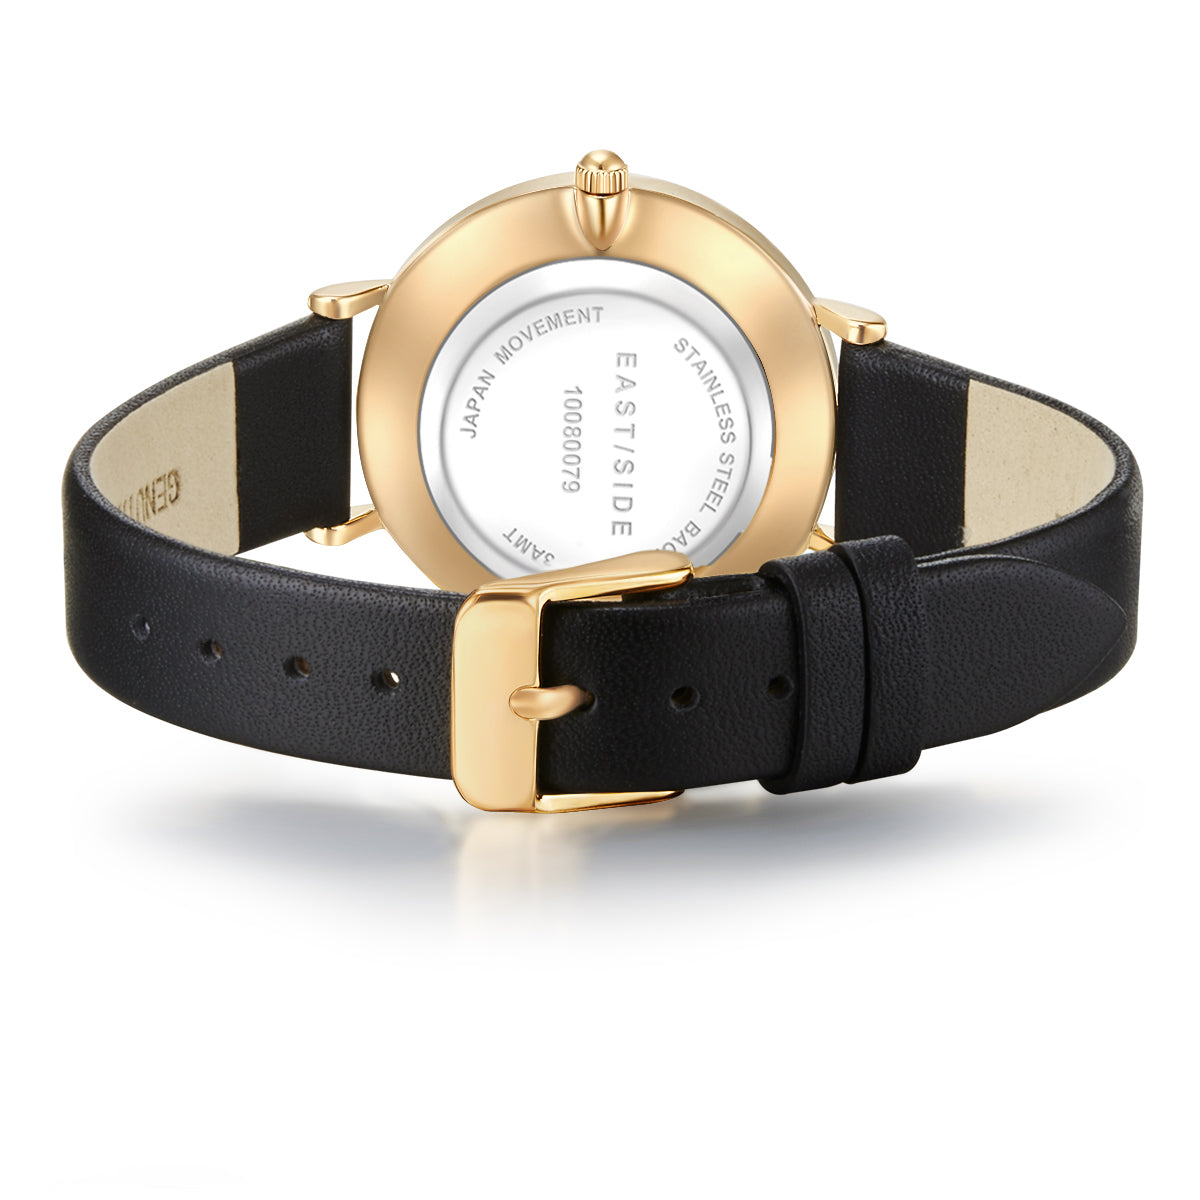 Pranera Lady Watch black yellow gold